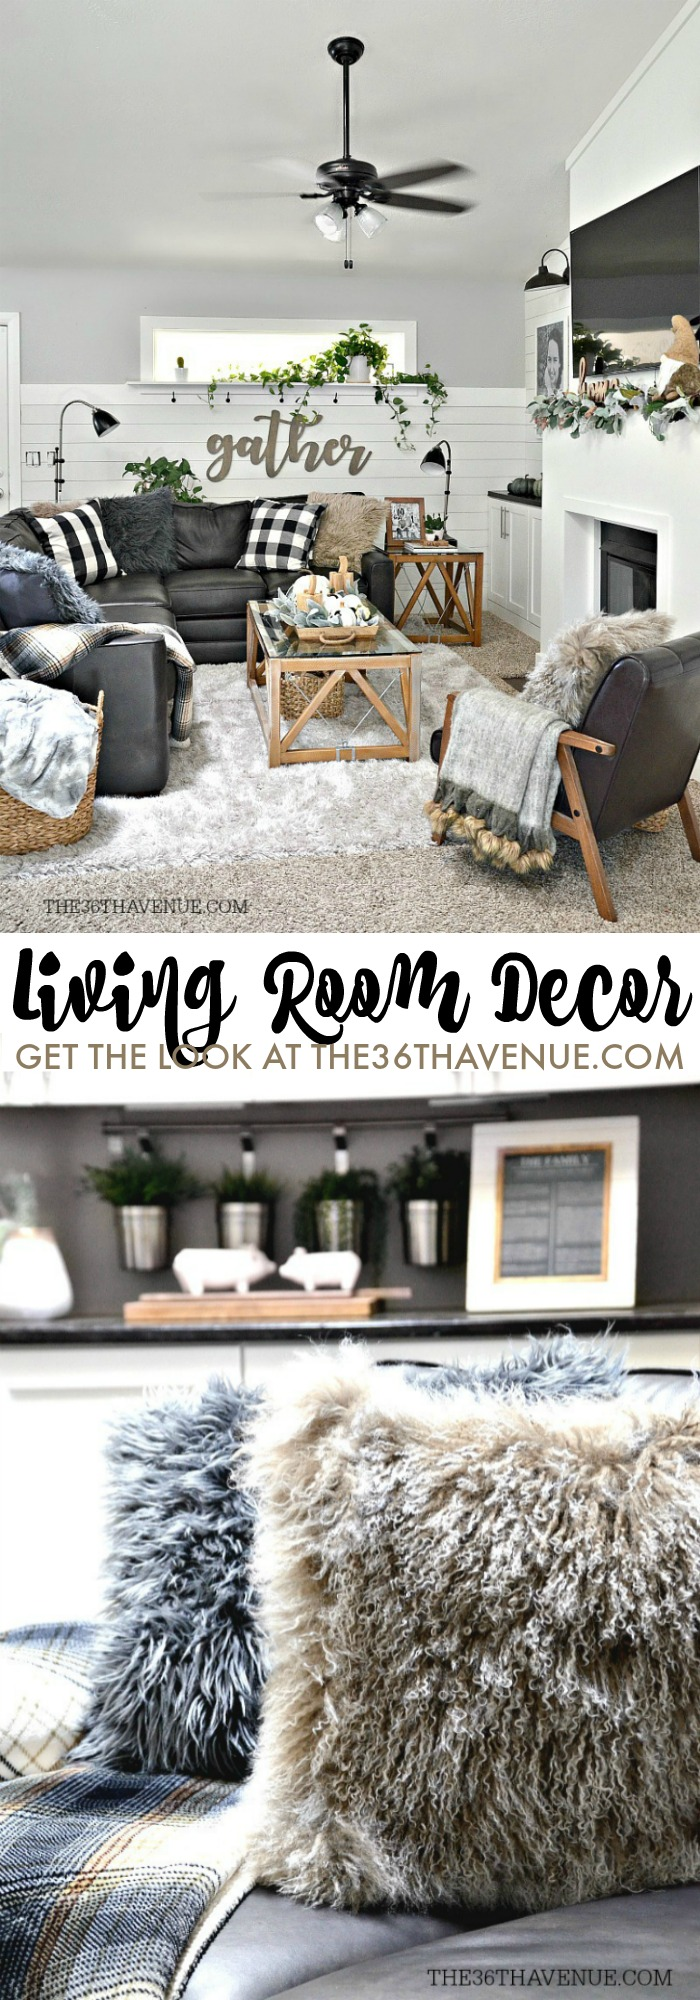 . Living Room Farmhouse Decor Ideas   The 36th AVENUE